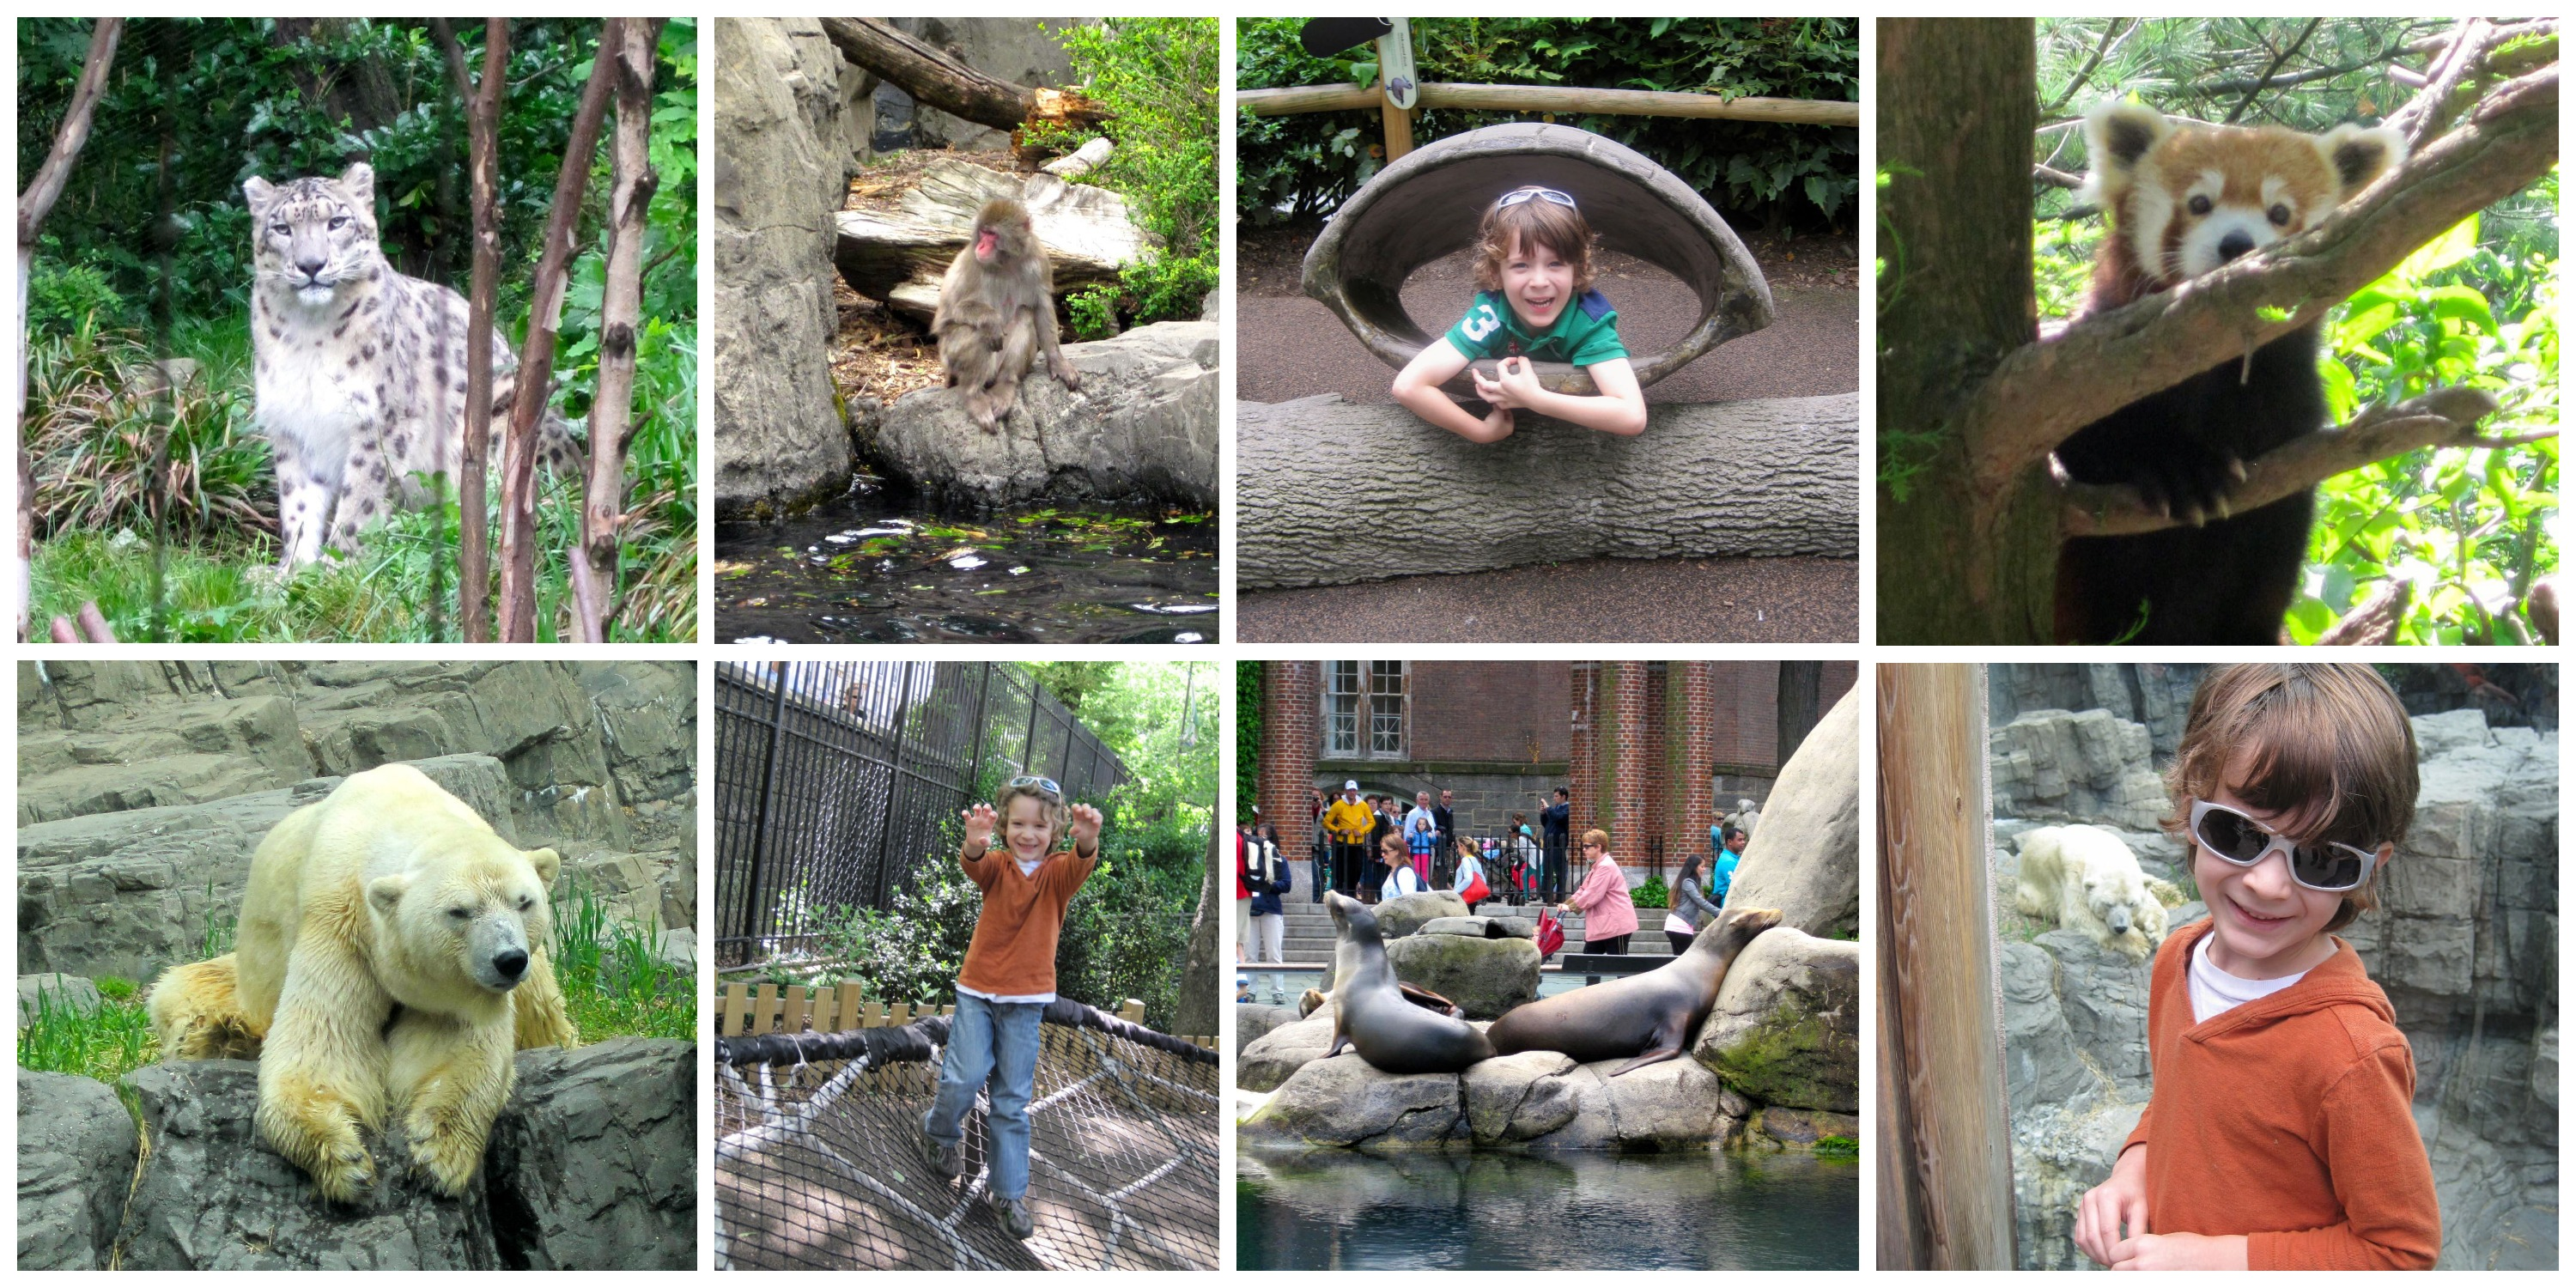 CentralParkZoo